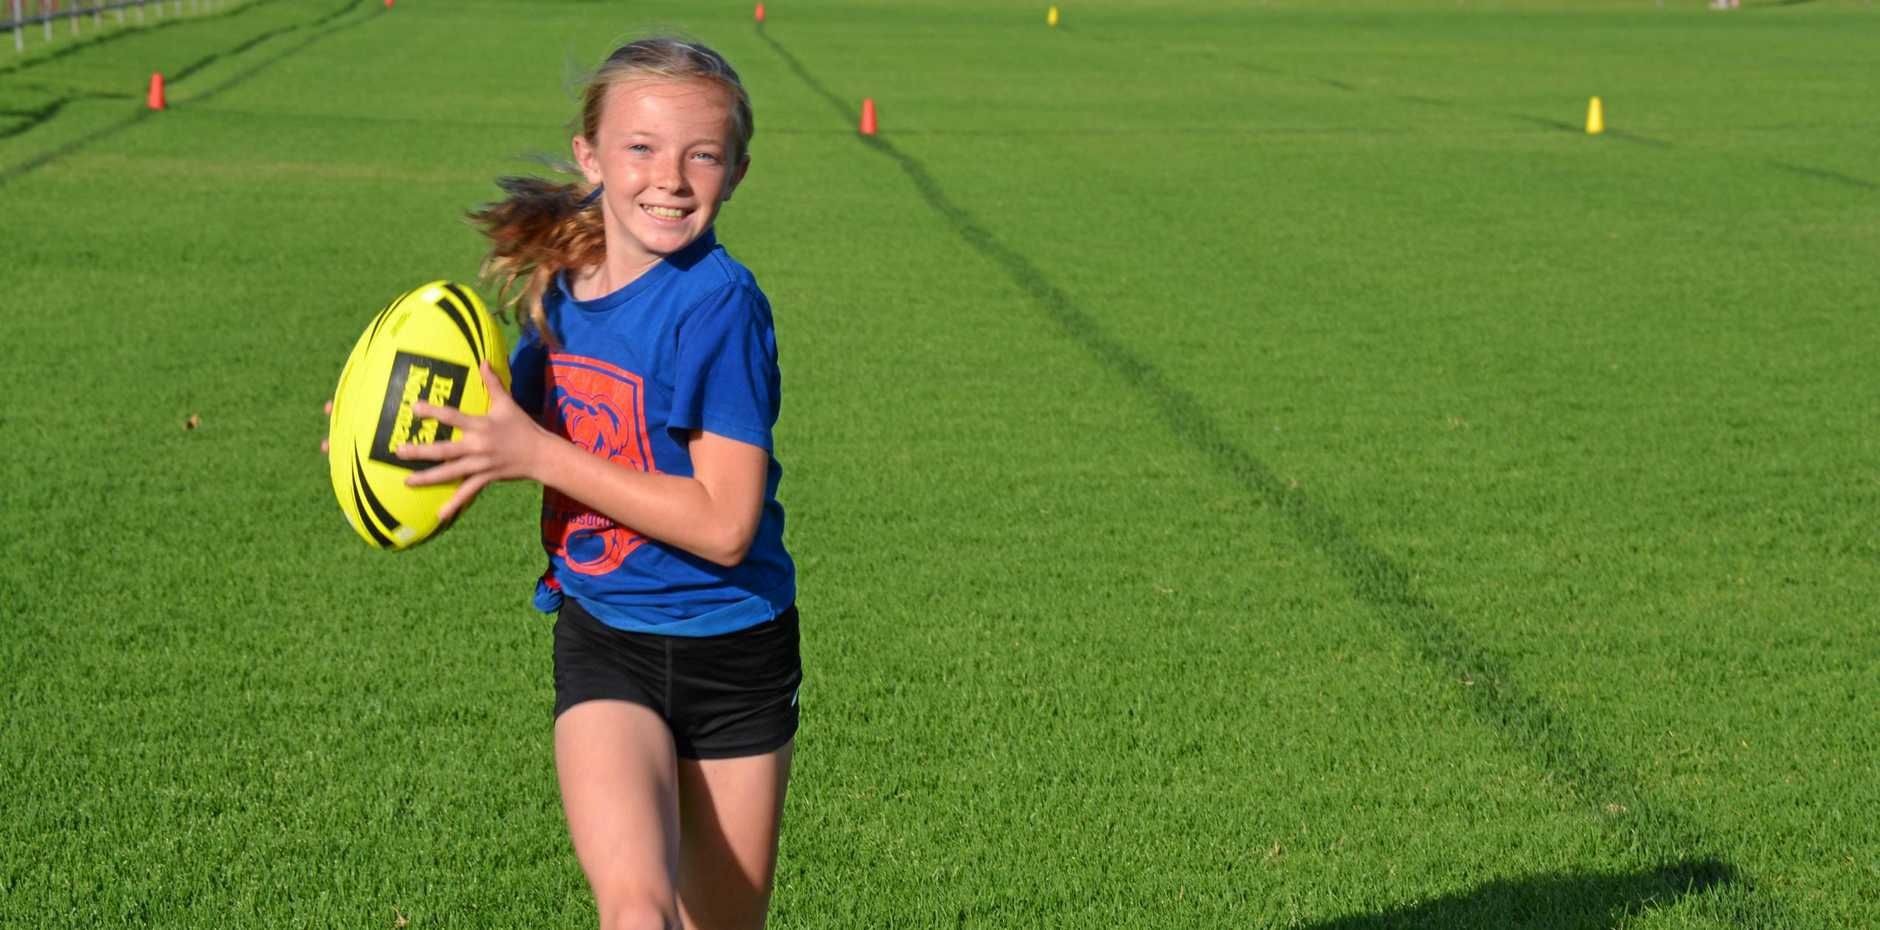 RUNNING AHEAD: Sharne Whyte loves to play touch football.